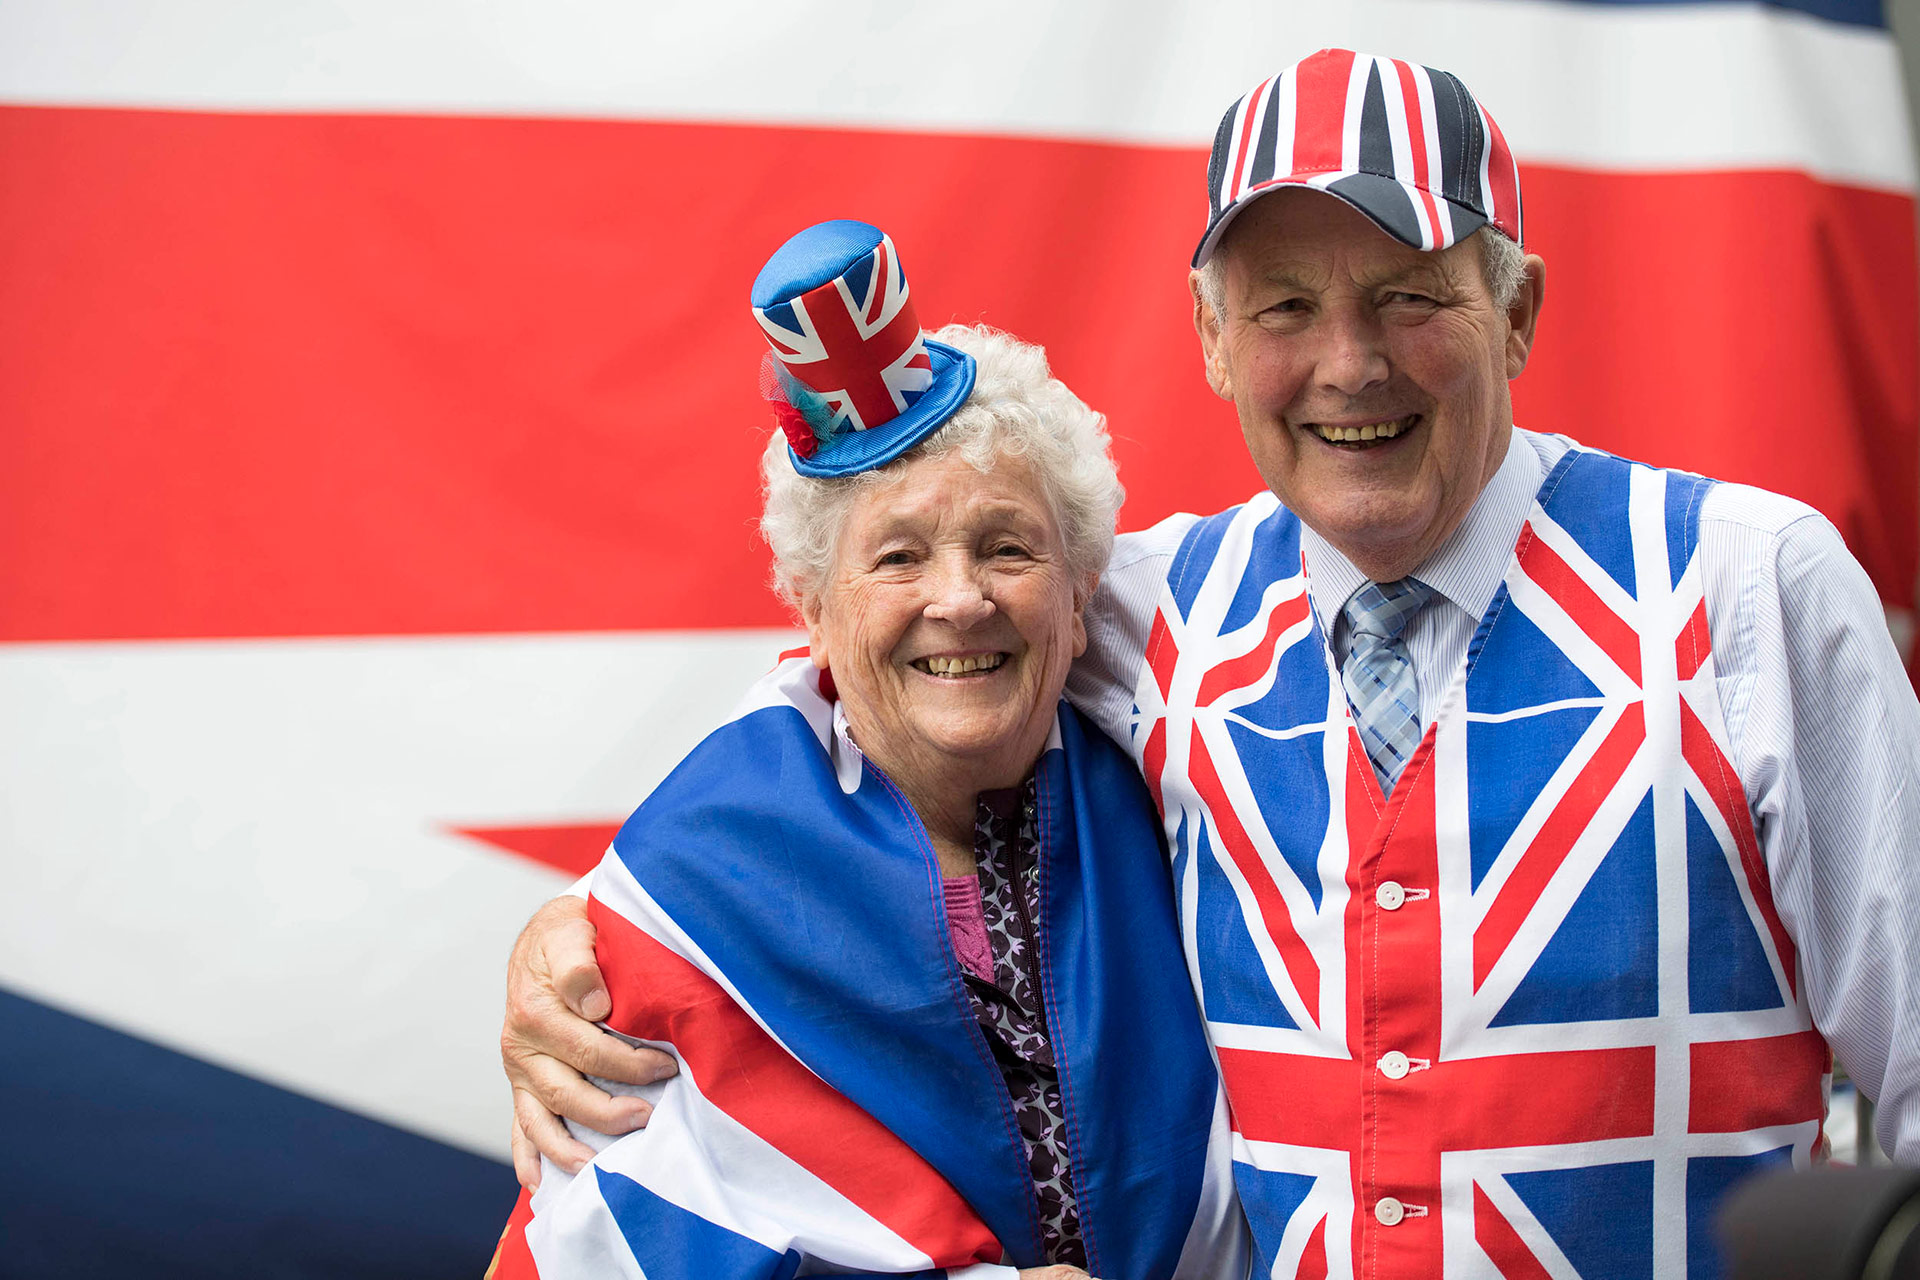 Two pensioners are photographed in union jack clothing during a parade in Manchester.